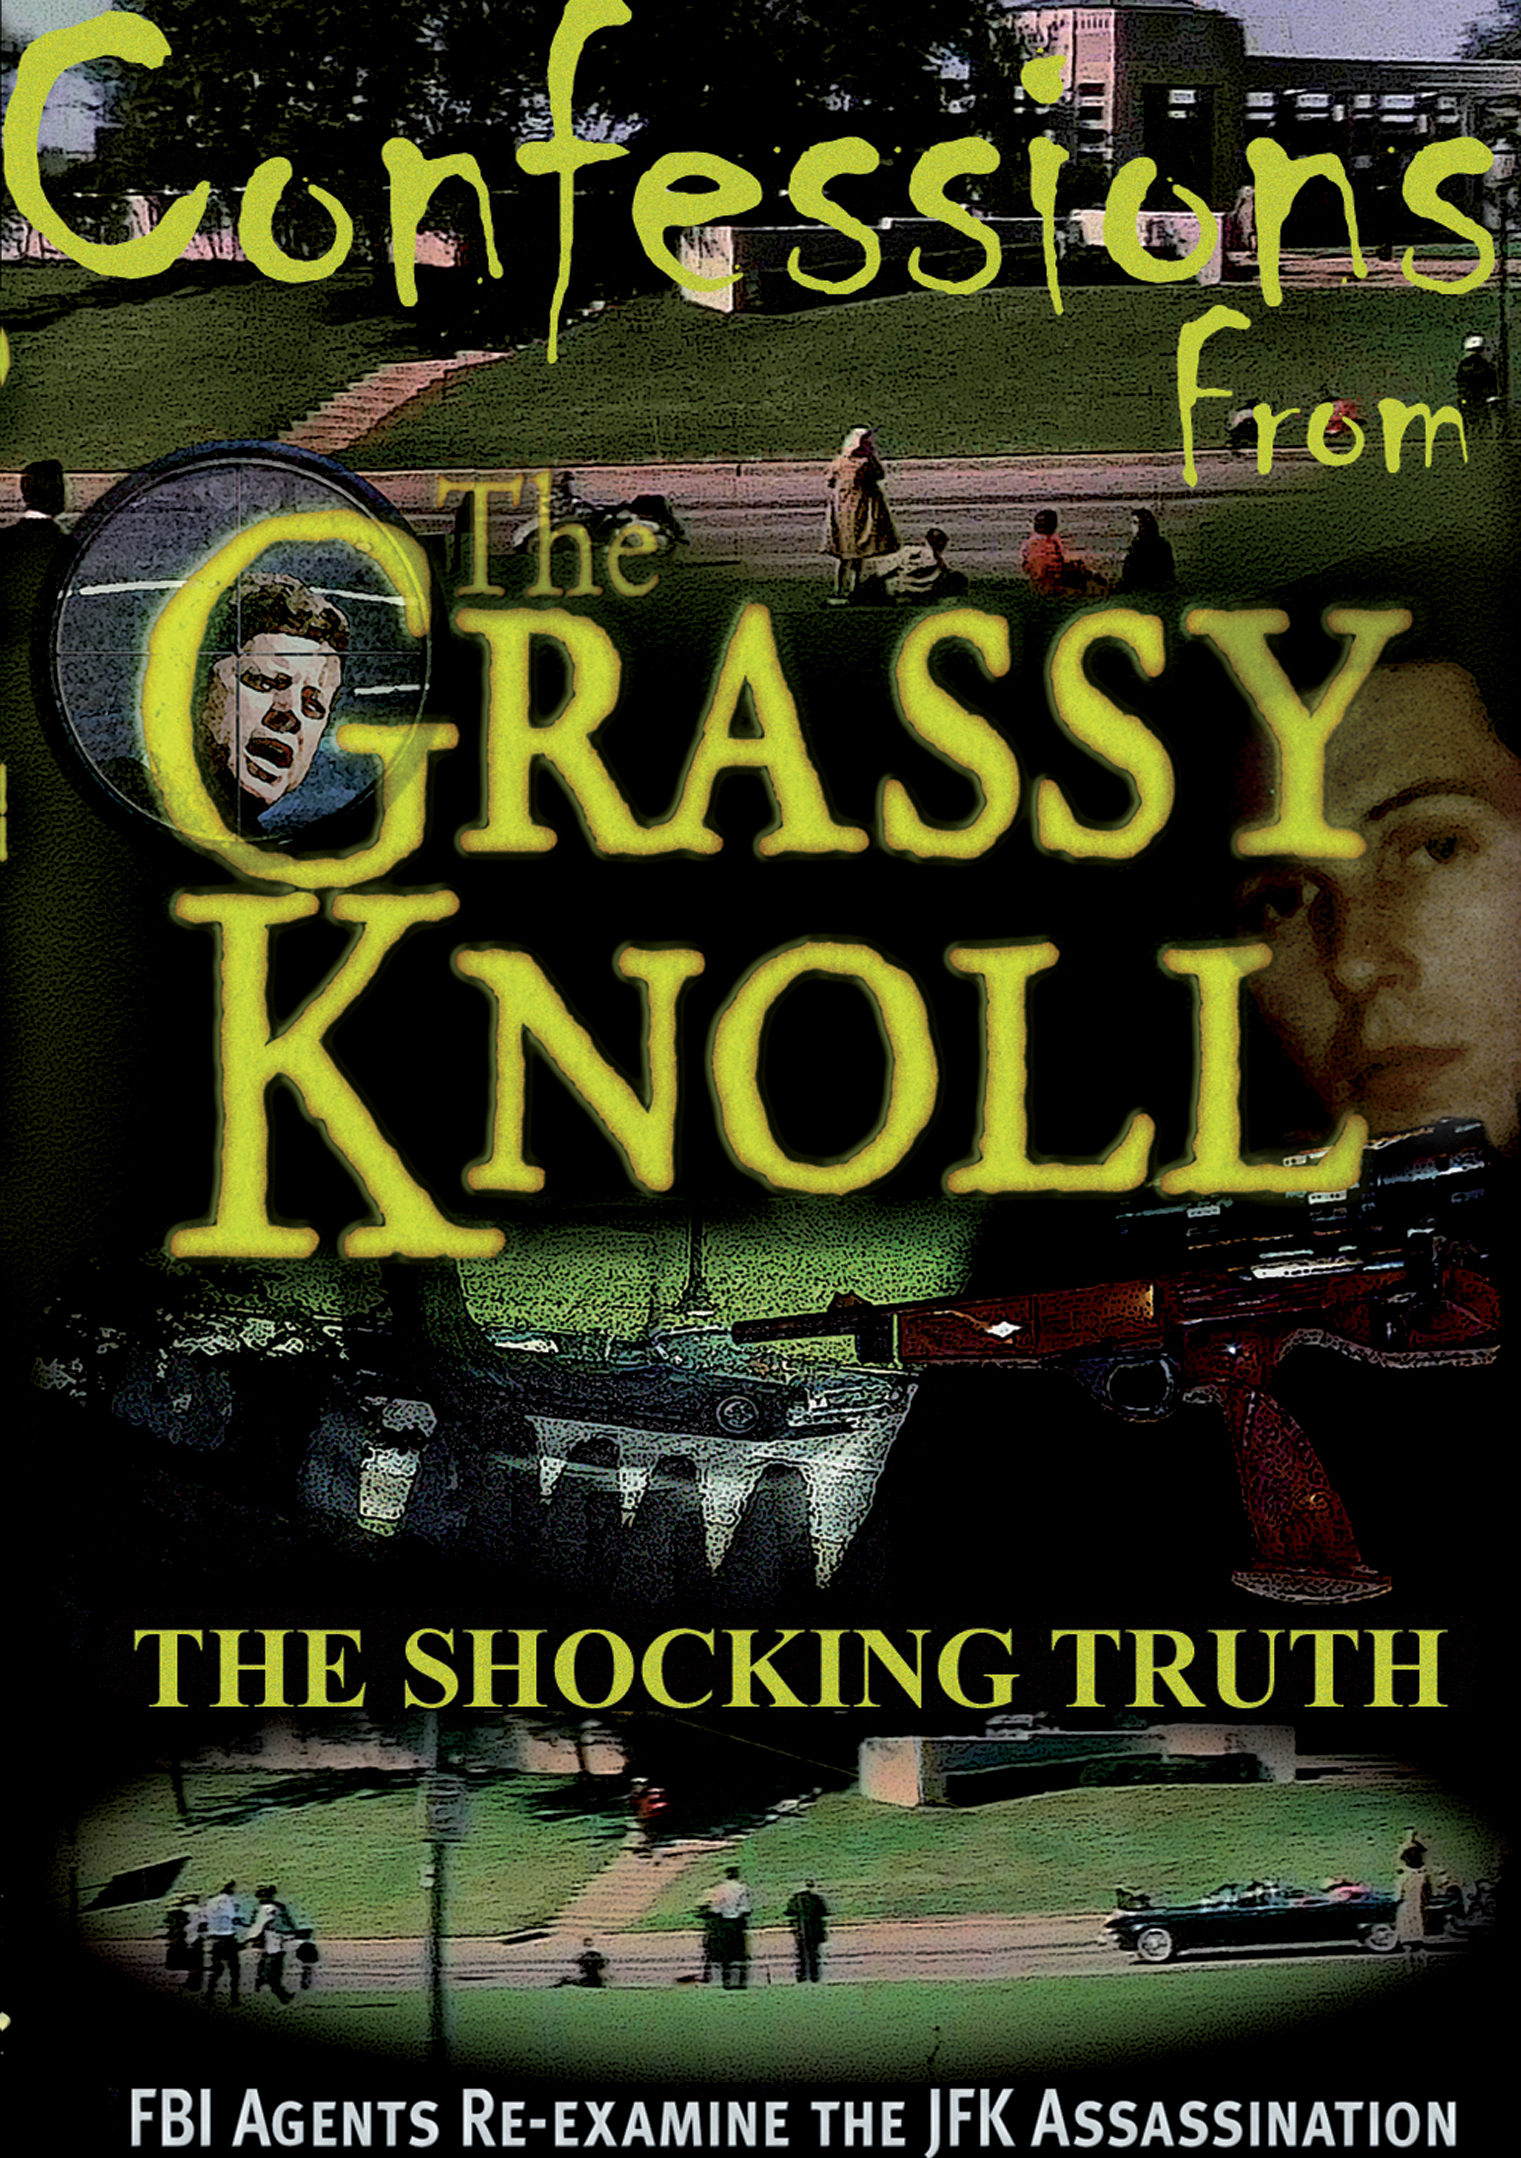 Confessions from the Grassy Knoll: The Shocking Truth